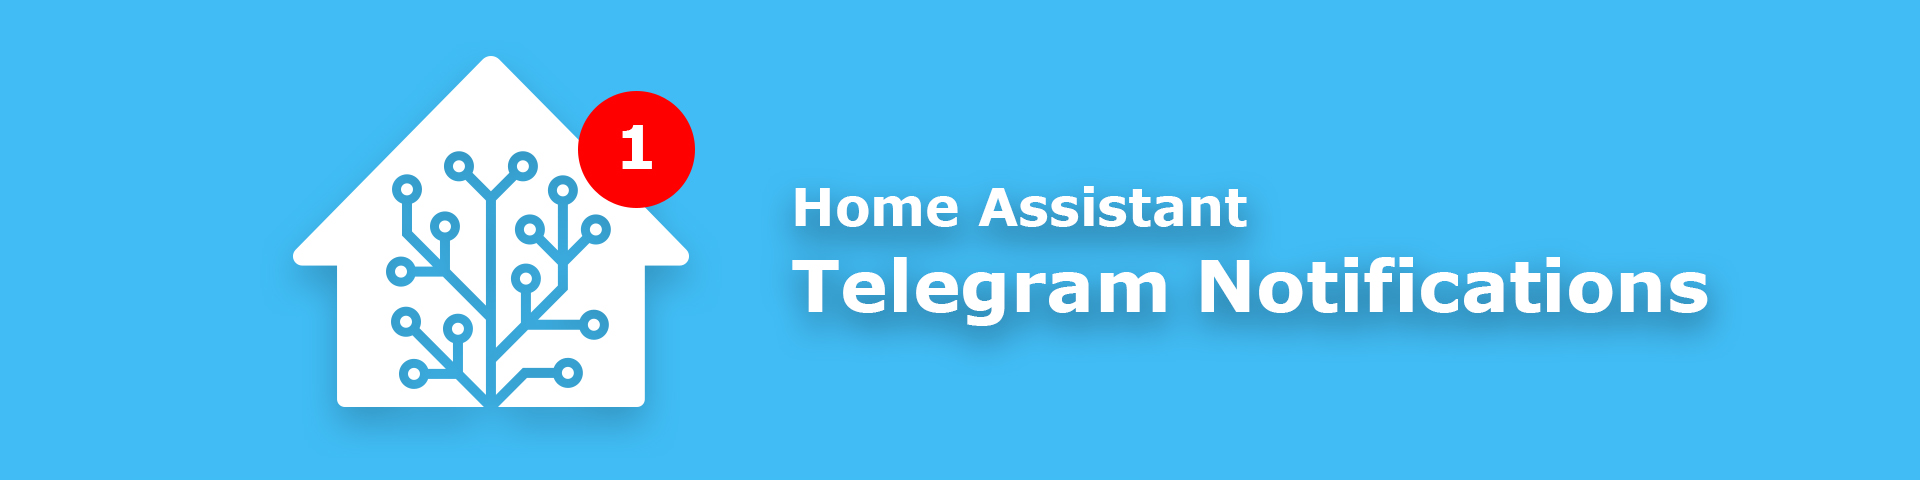 Home Assistant notifications on Telegram